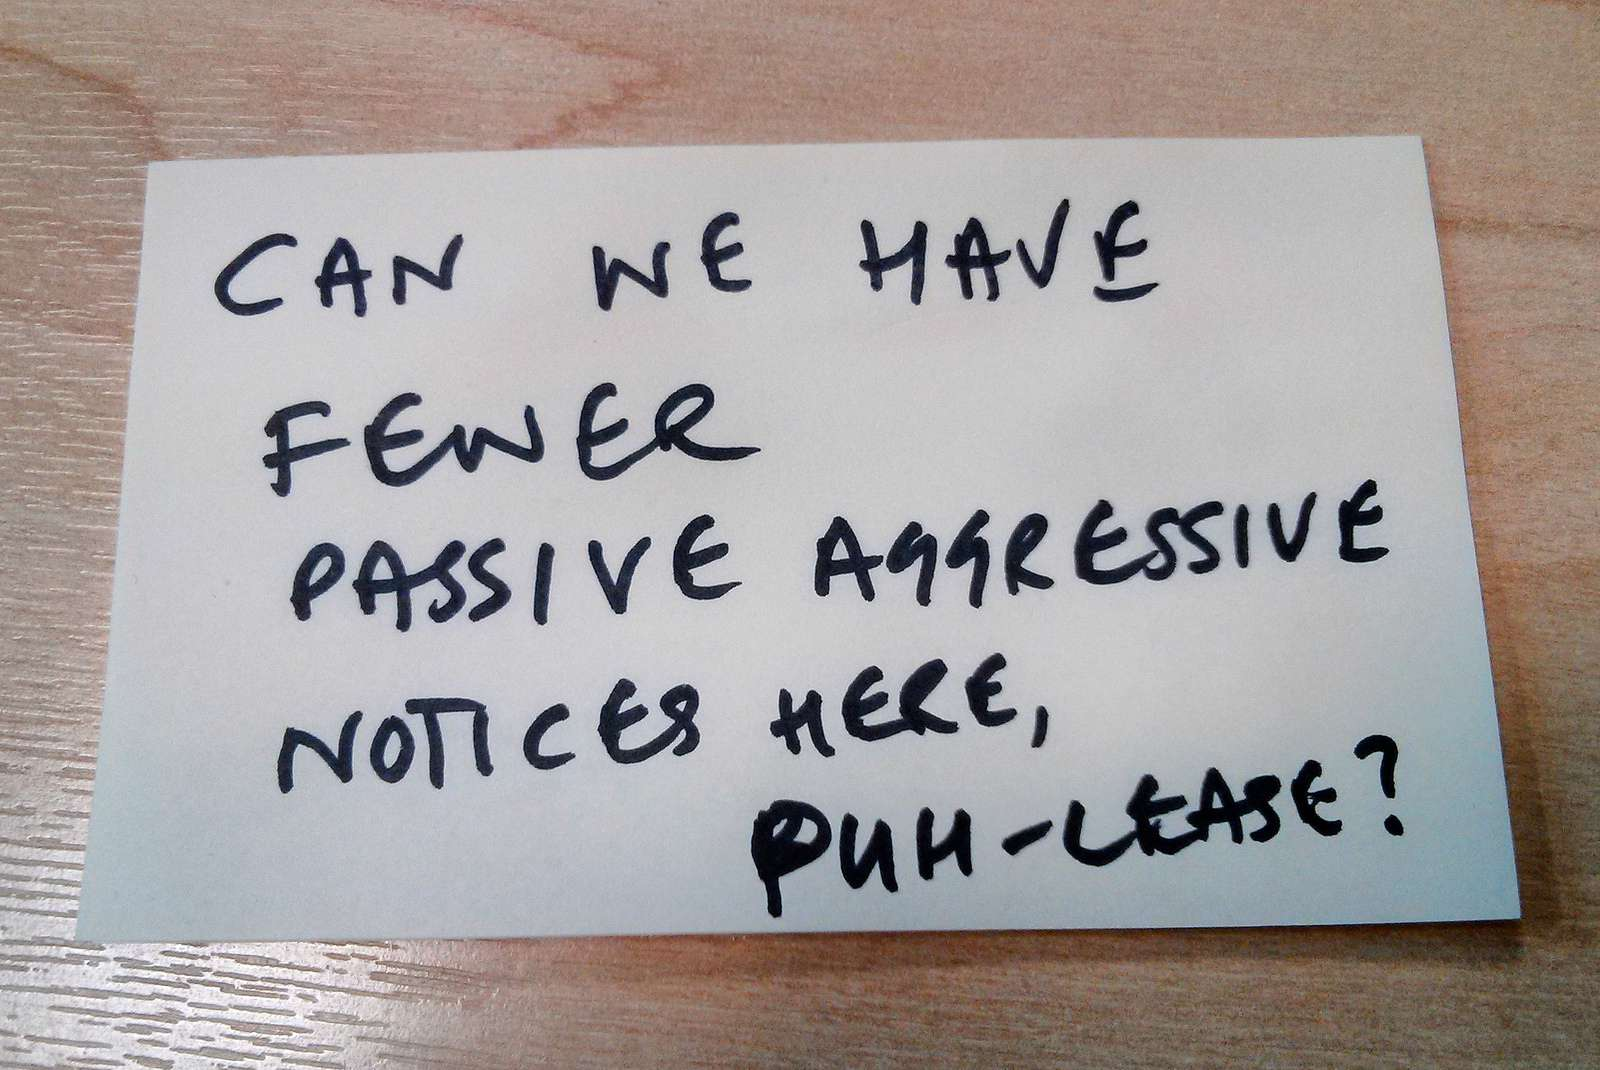 can we have fewer passive aggressive notices here puh-leese?